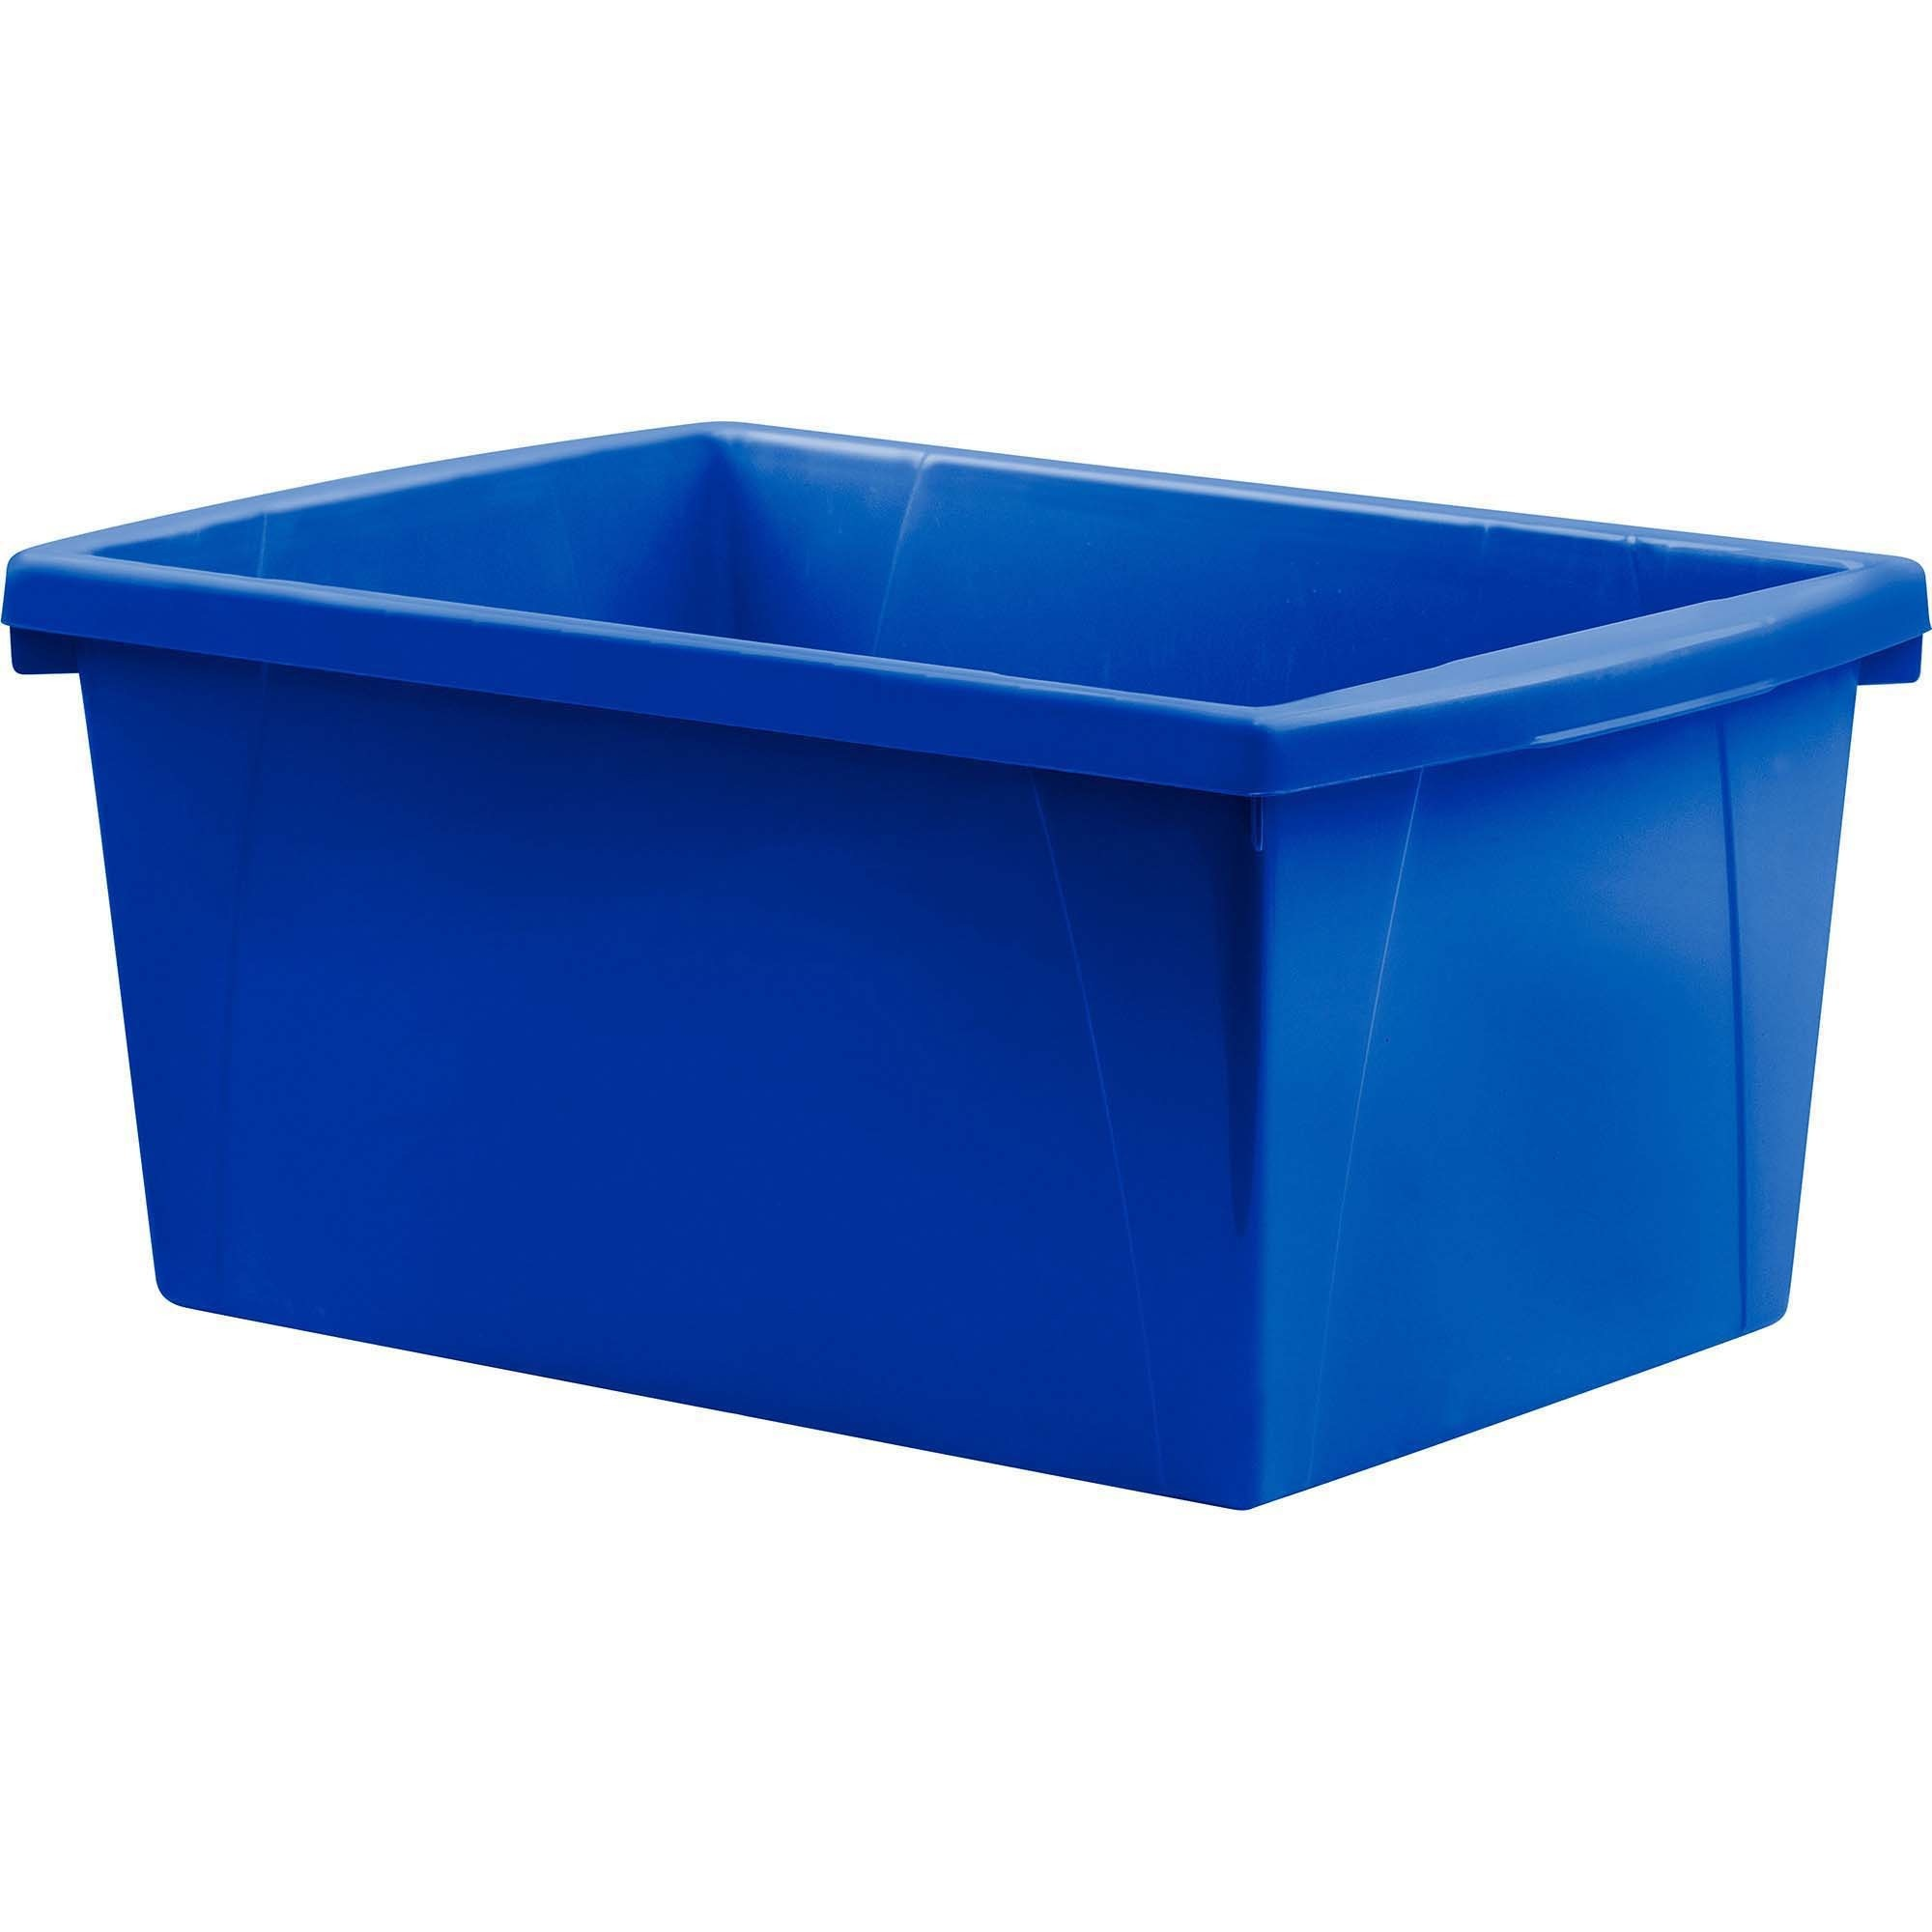 Storex Teal 5.5 Gallon Storage Bins   21 L   Stackable   Plastic   Blue    For Book, Tool, Classroom Supplies   1 Each